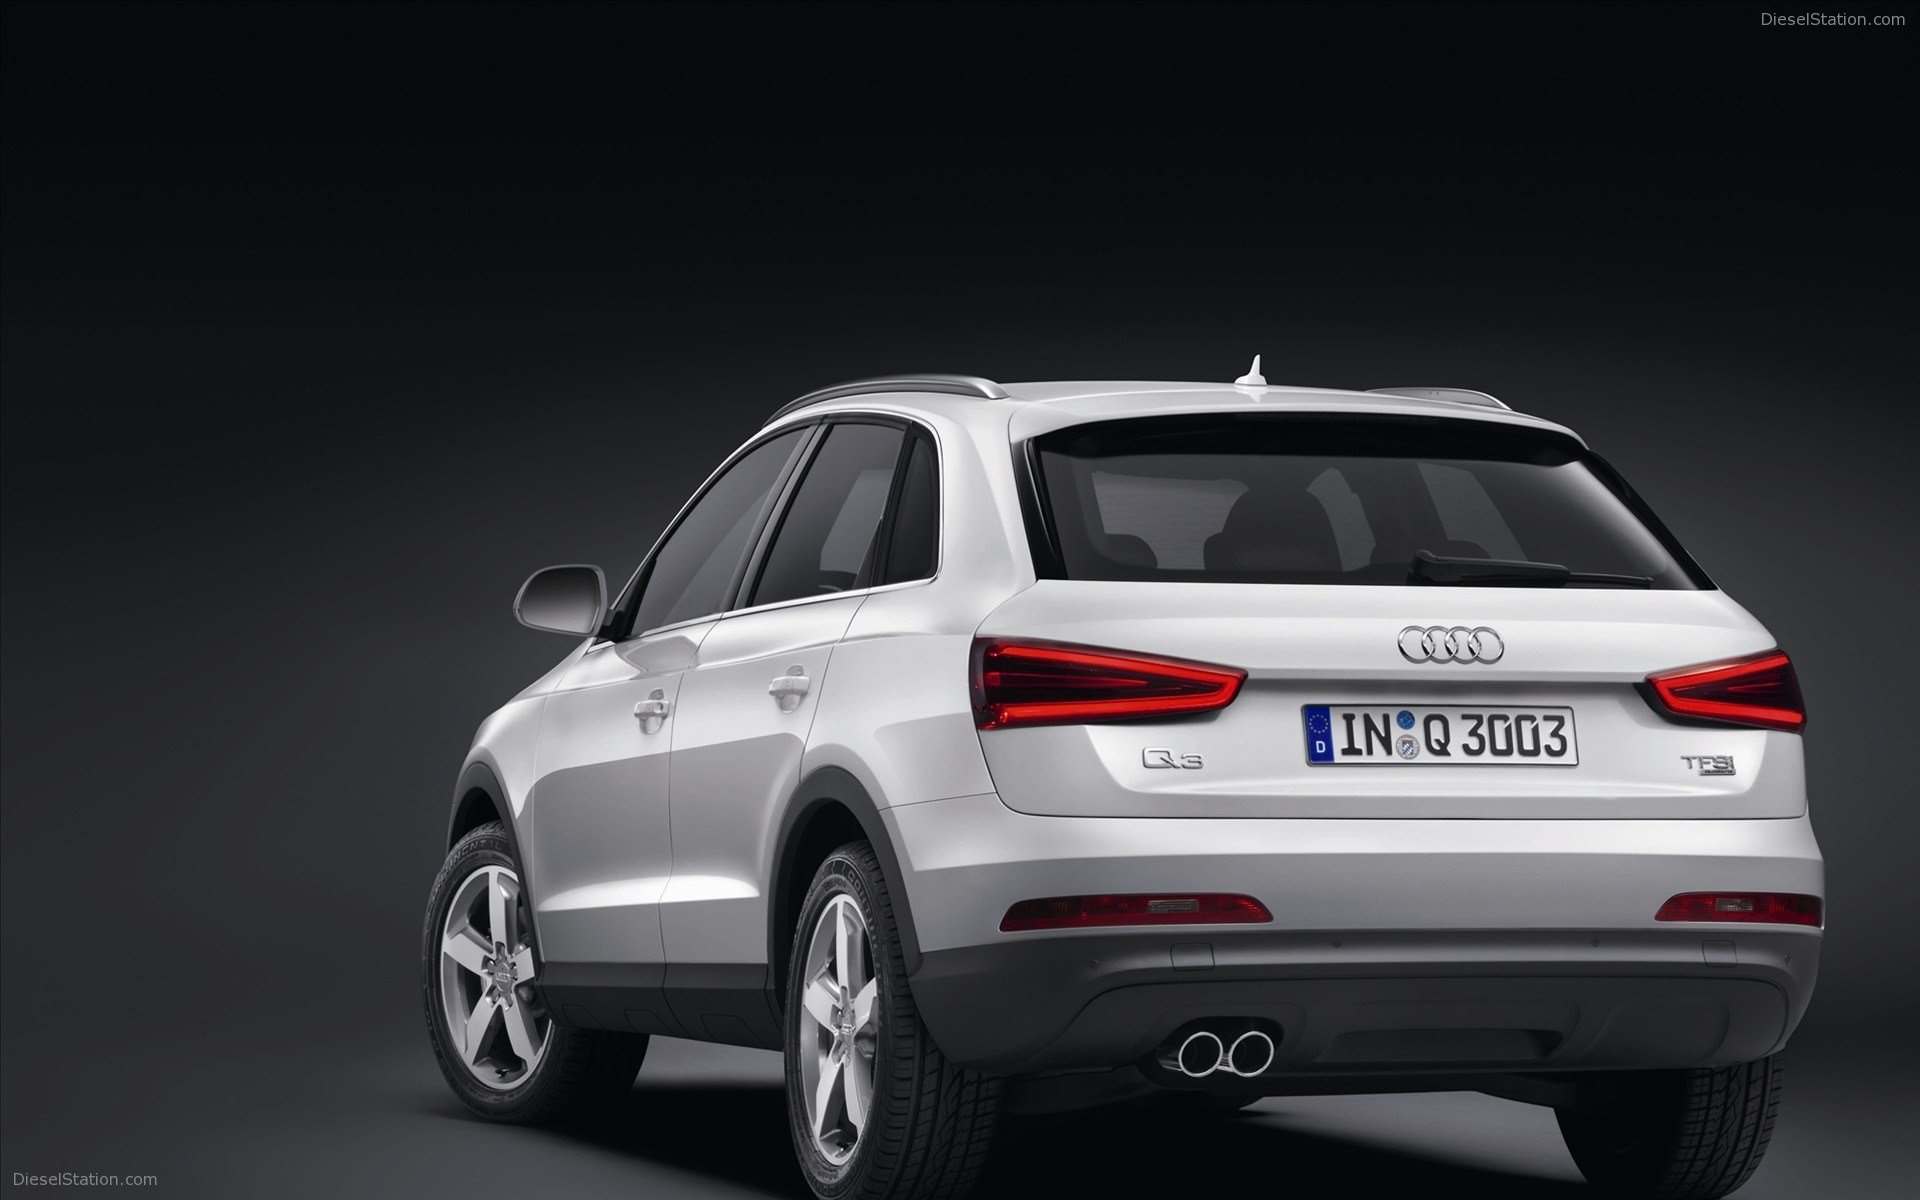 Latest Audi Q3 2012 Widescreen Exotic Car Wallpapers 02 Of 115 Free Download